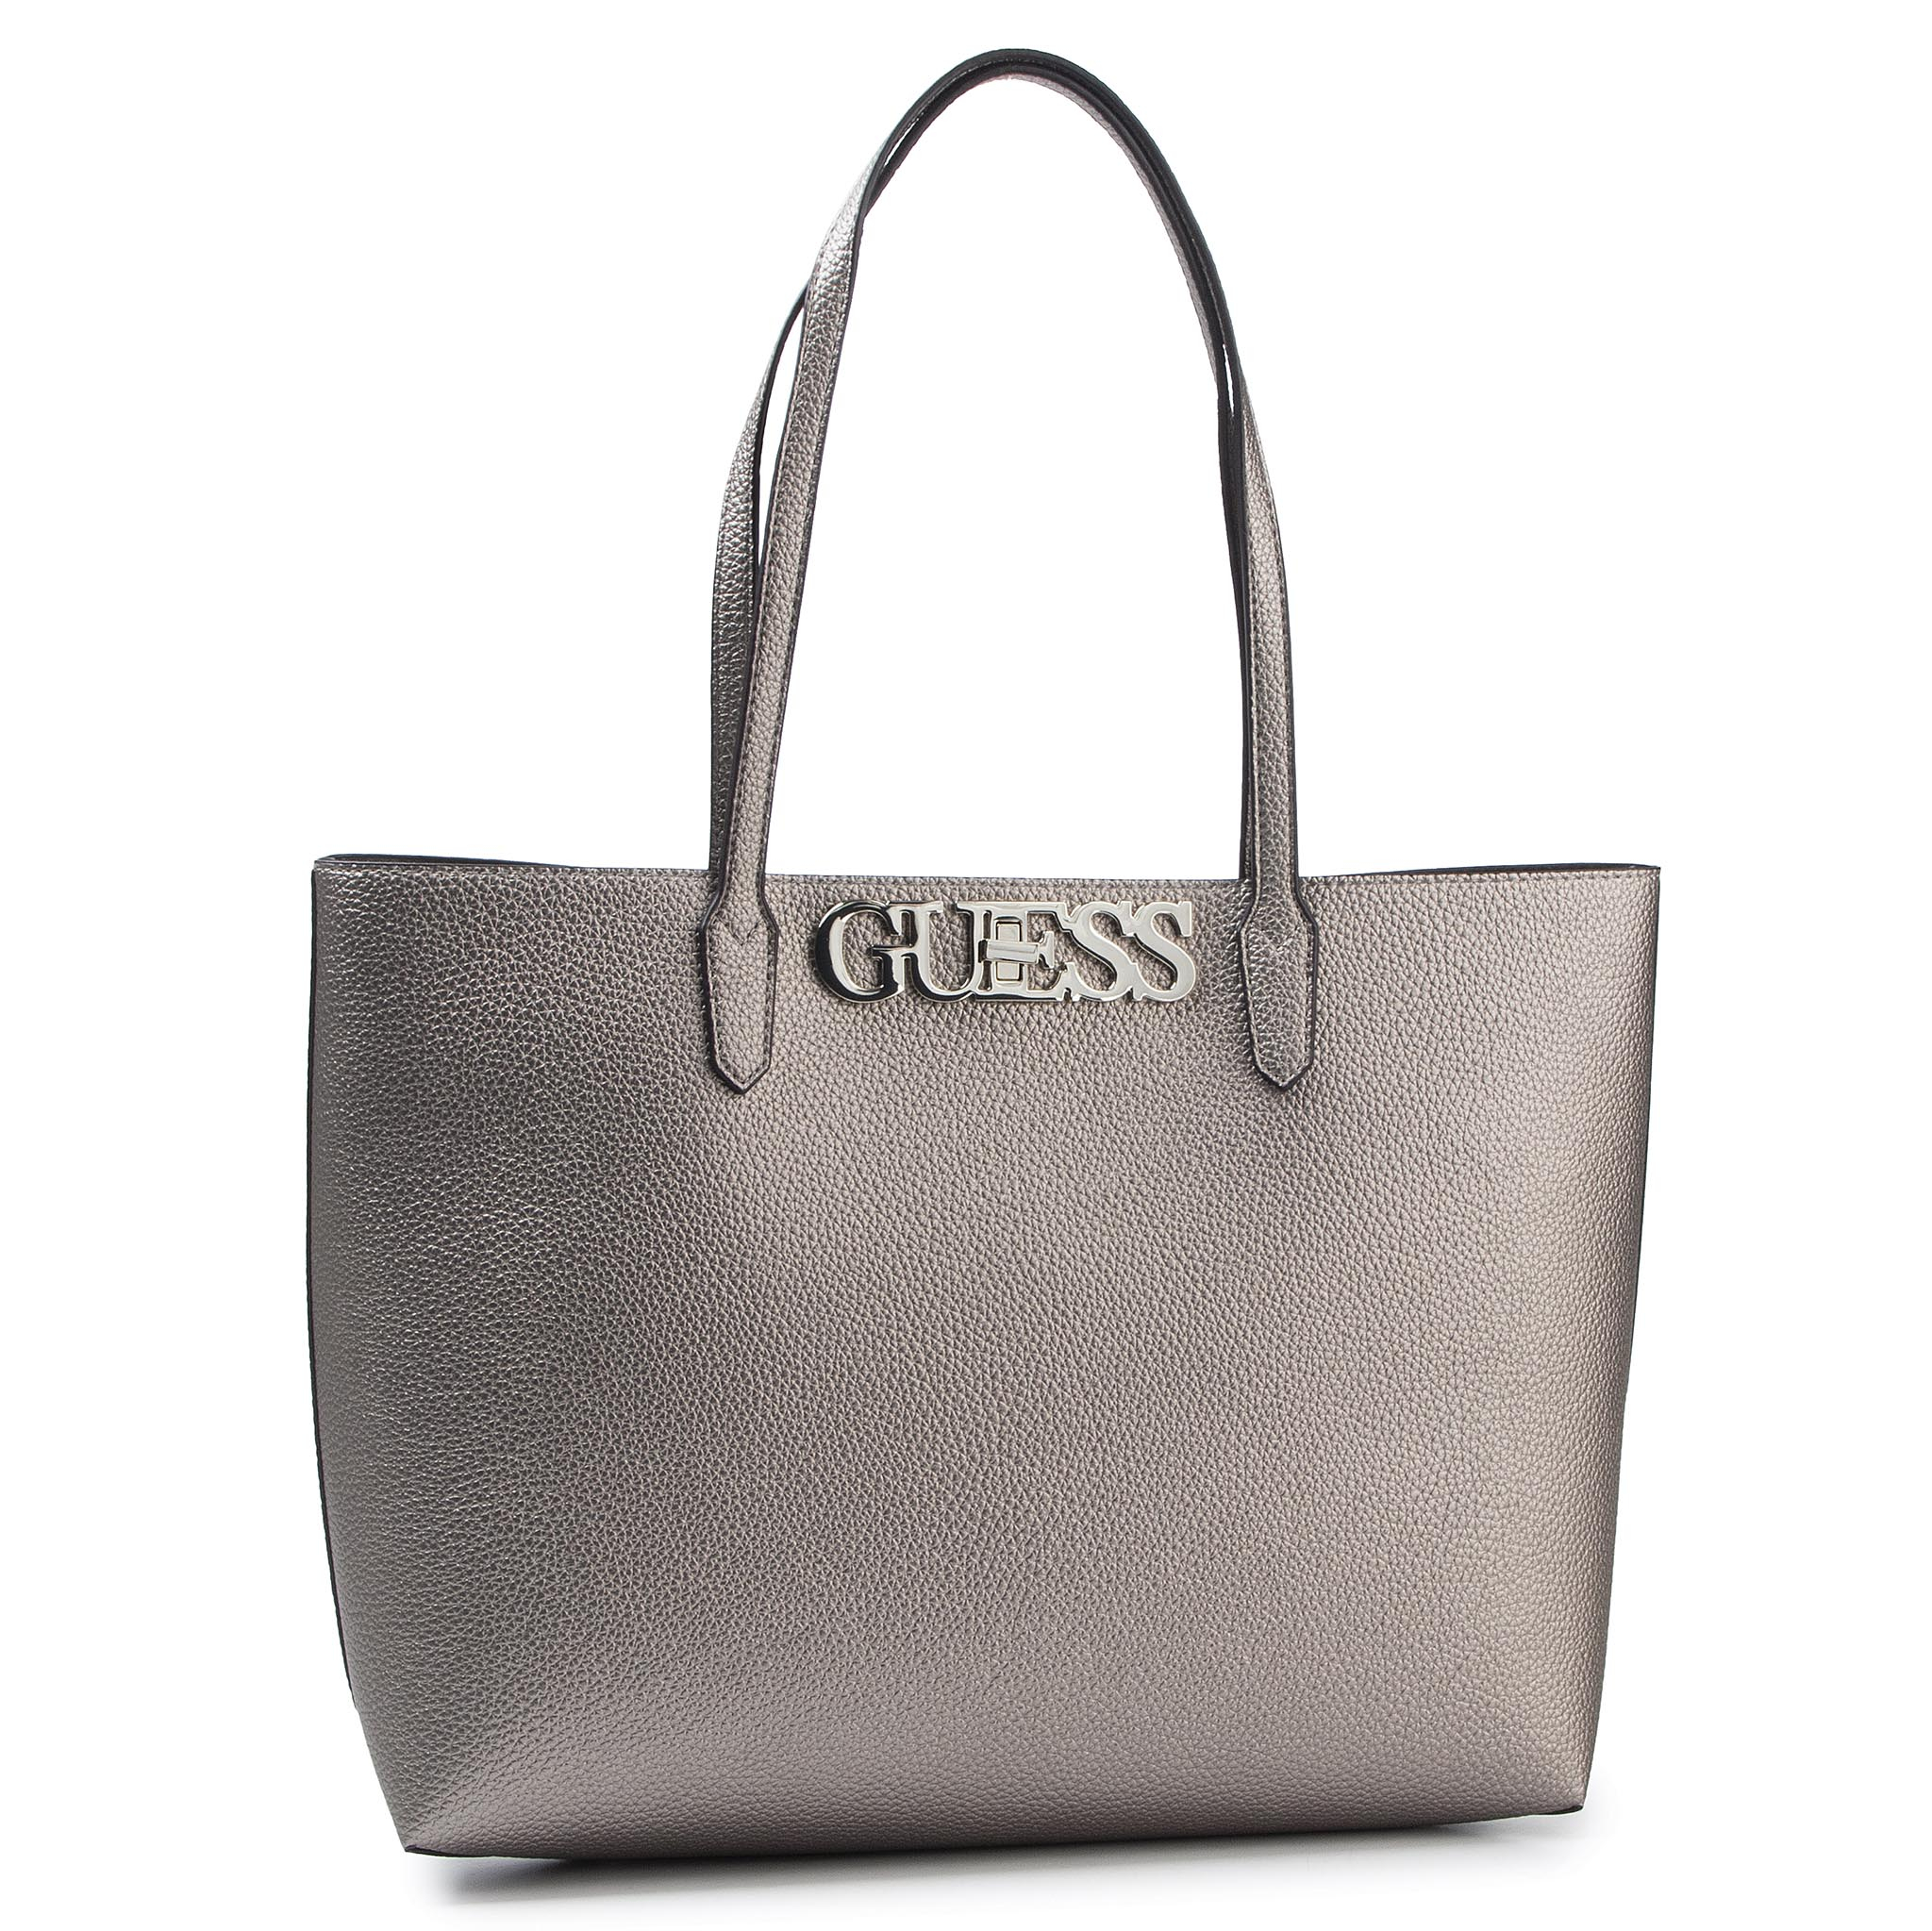 Geantă GUESS - Uptown Chic (MG) HWMG73 01230 PEW